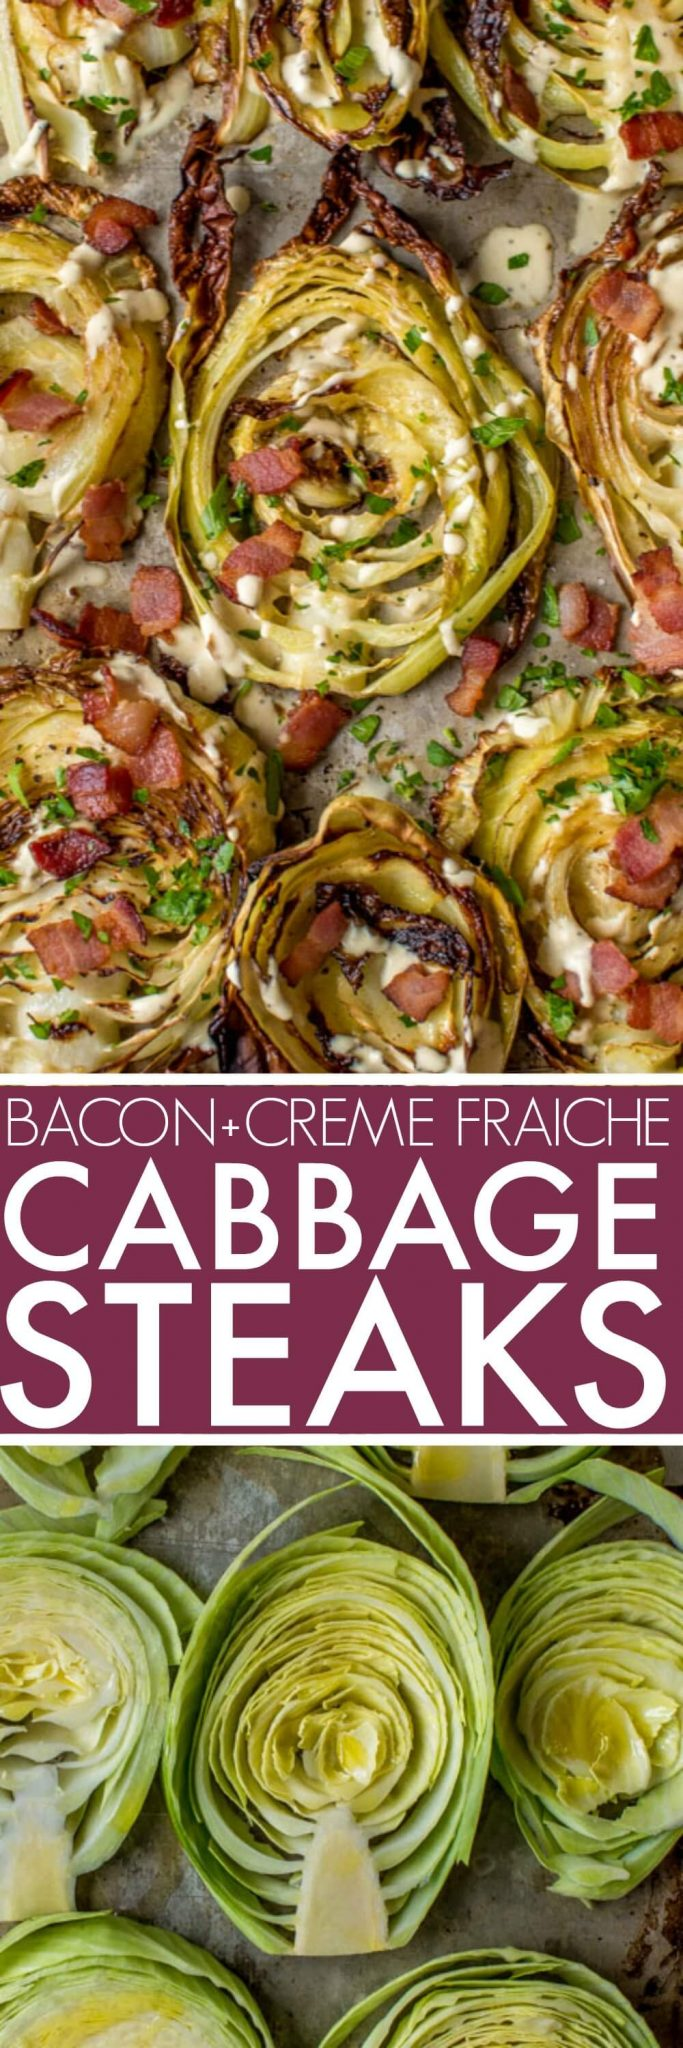 Roasted Cabbage Steaks with crispy bacon & garlicky creme fraiche are a decadent treat for when you're trying to eat a bit healthier. #cabbagesteaks #cabbage #lowcarb #healthy #healthyeating